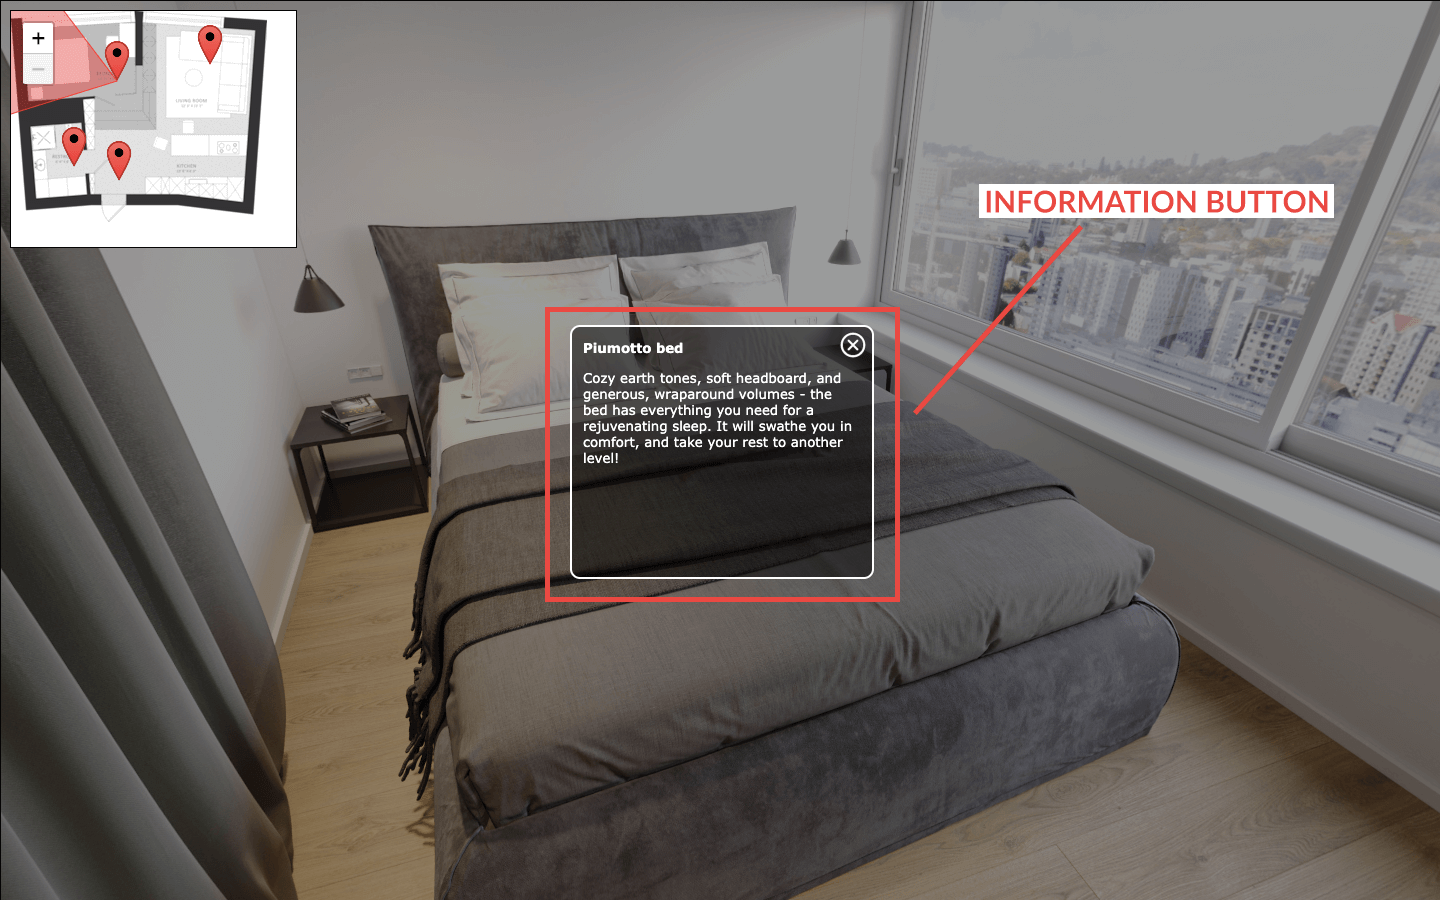 Information Button with a Description of a Bed in a 3D Tour